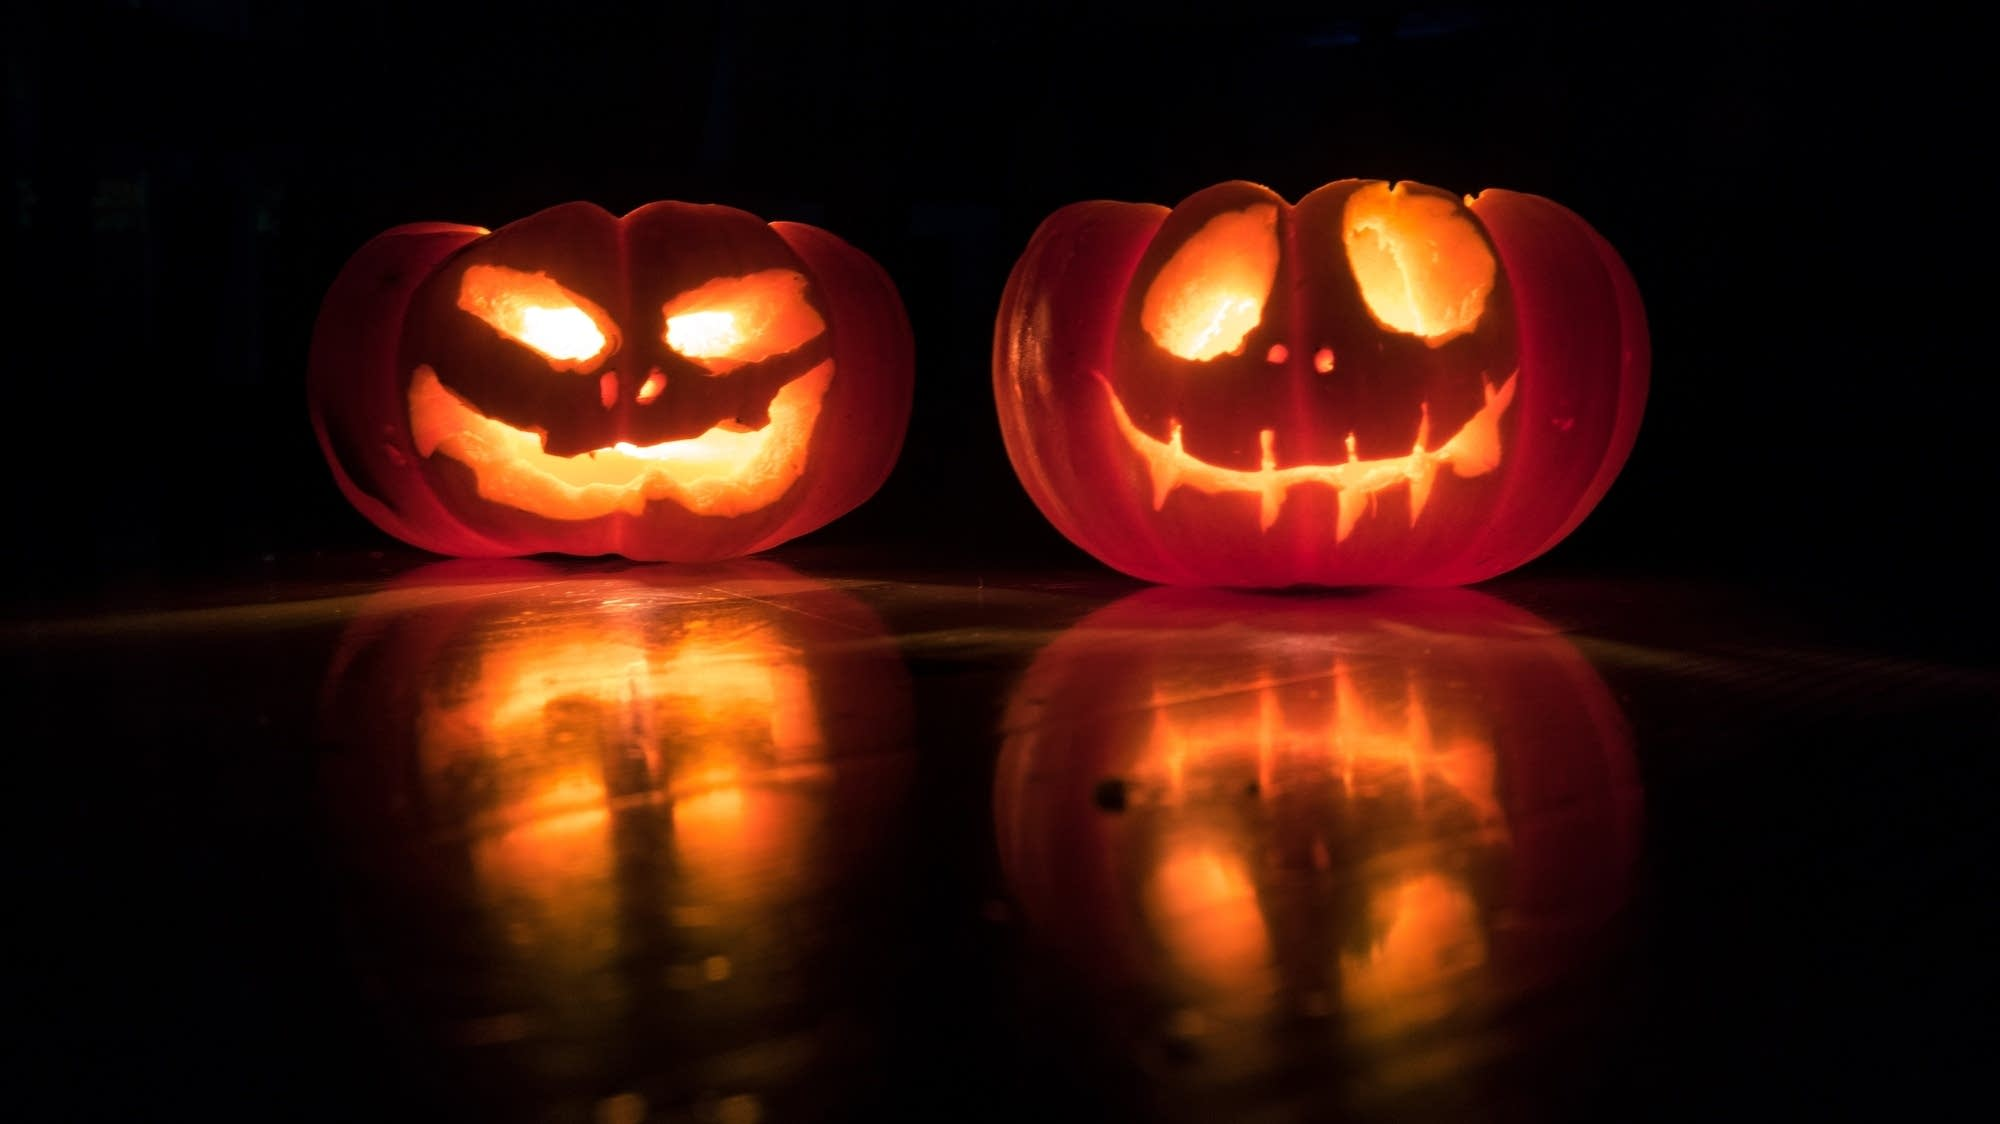 Get Ready For Halloween With Our Playlist Of Spooky Classical Music